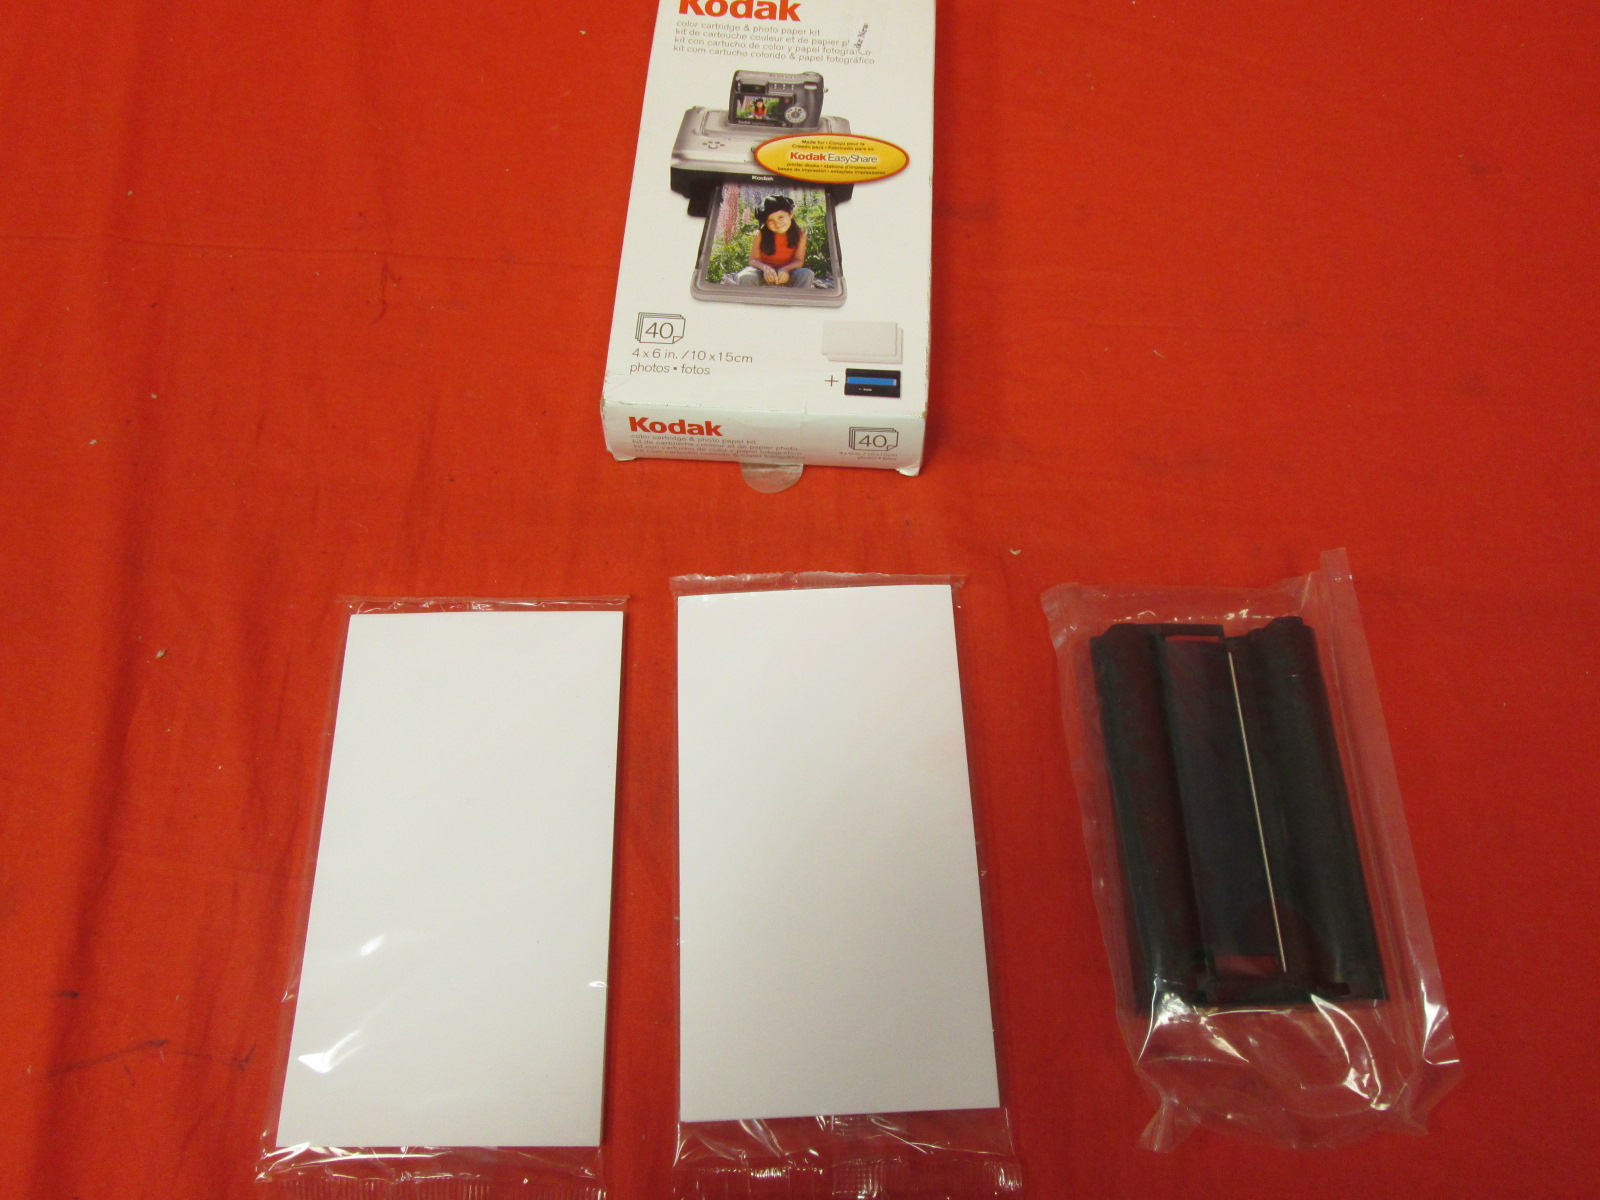 Kodak PH-40 Easyshare Printer Dock Color Cartridge And Photo Paper